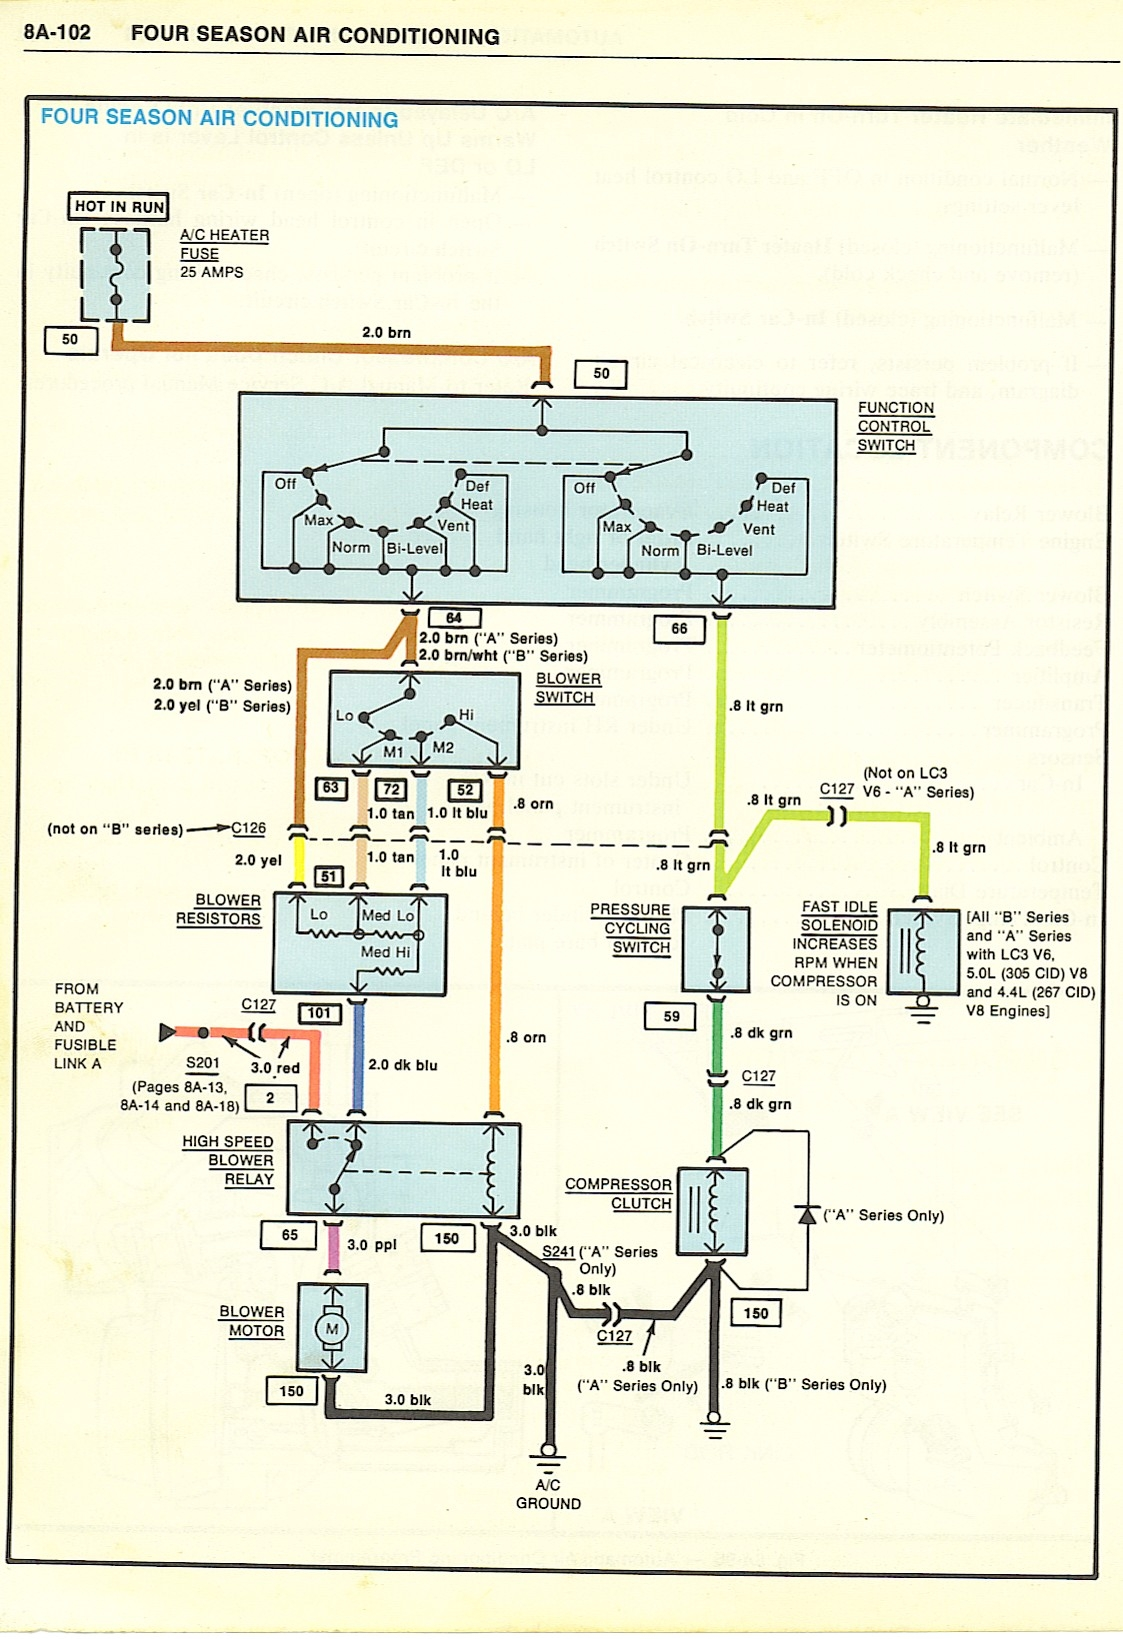 hight resolution of ford f800 wiring diagram air conditioning wiring diagramford f800 wiring diagram air conditioning wiring diagramford f800